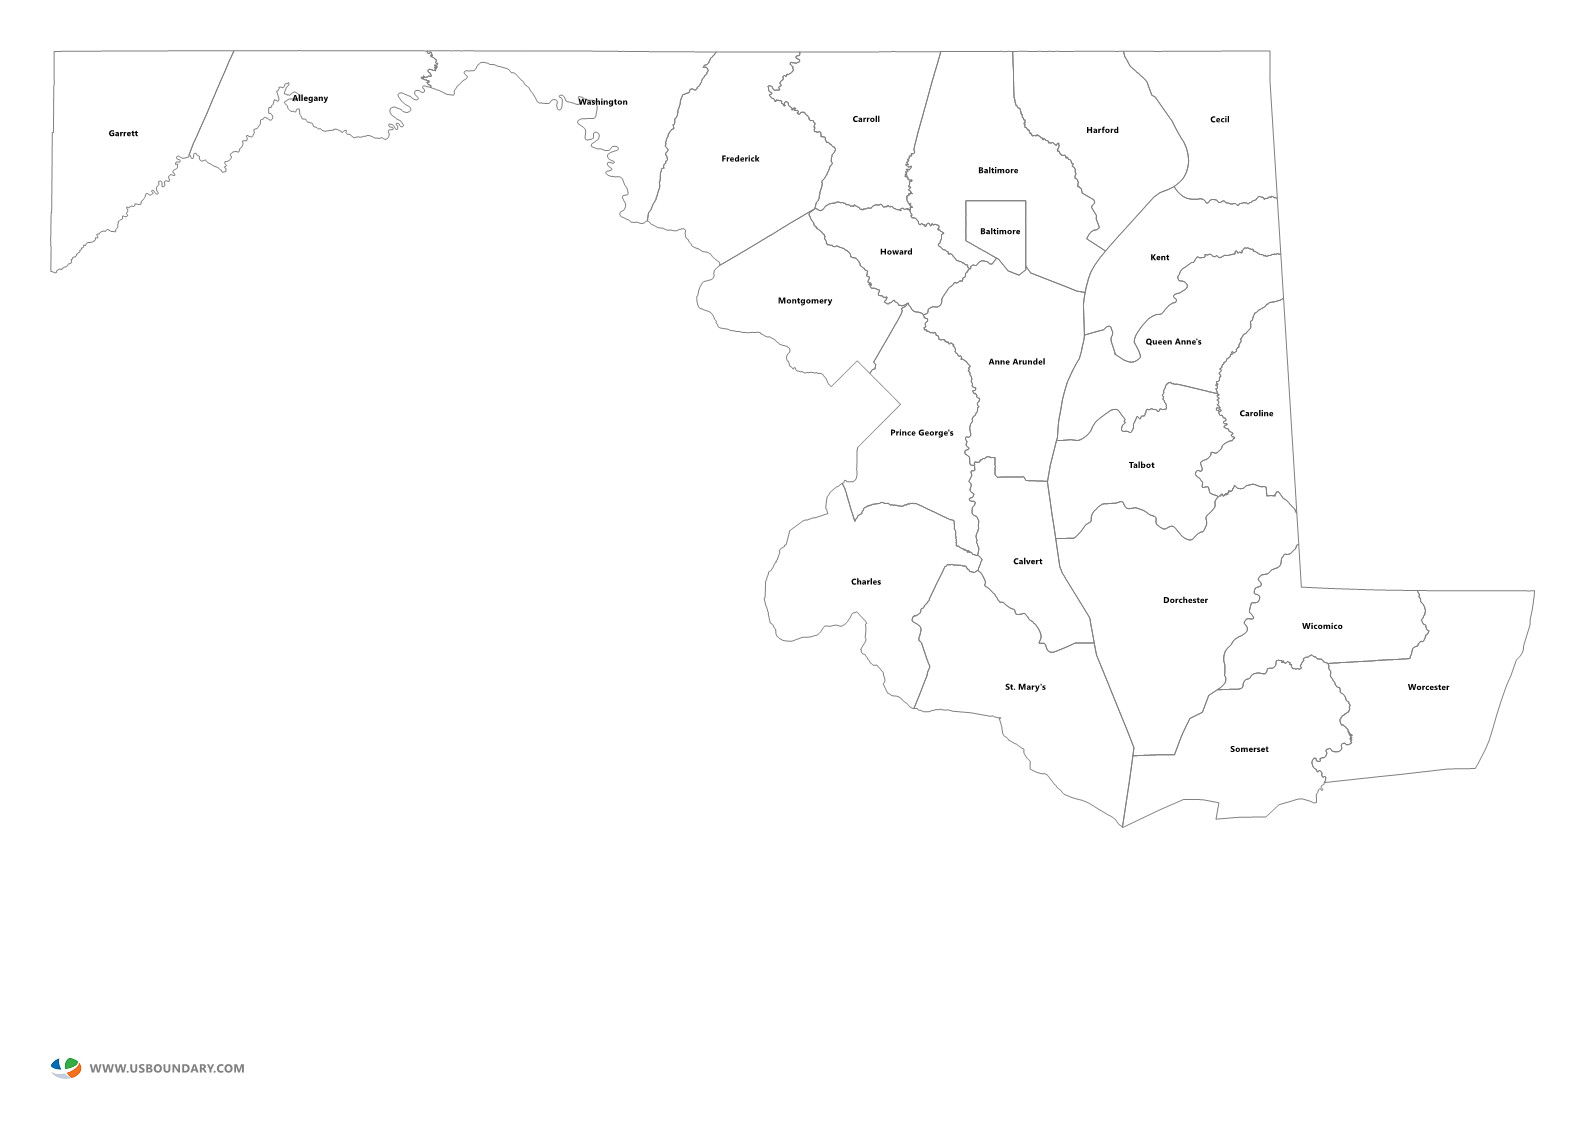 Texas state outline png. Counties maps download maryland